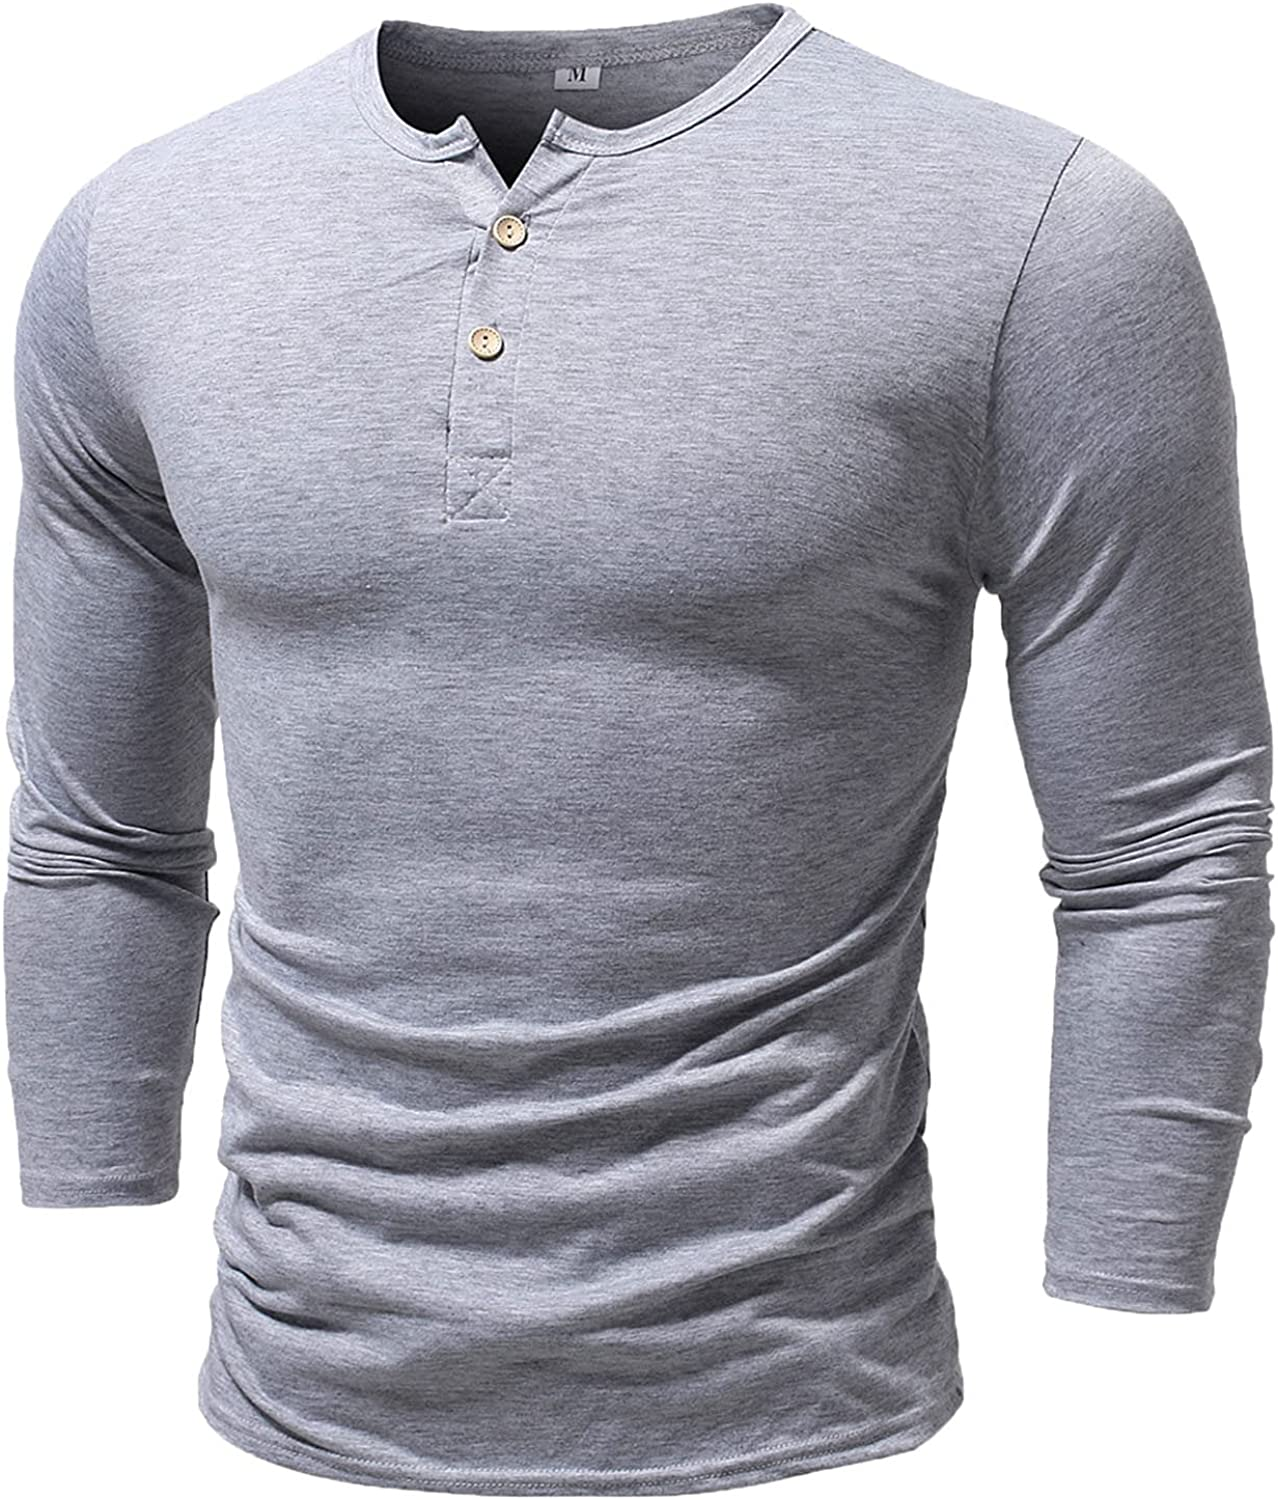 Mens Long Sleeve Henley Tee Shirts Casual Summer Compression Muscle Workout T-Shirt Slim Fit Tops Beach Yoga Blouses